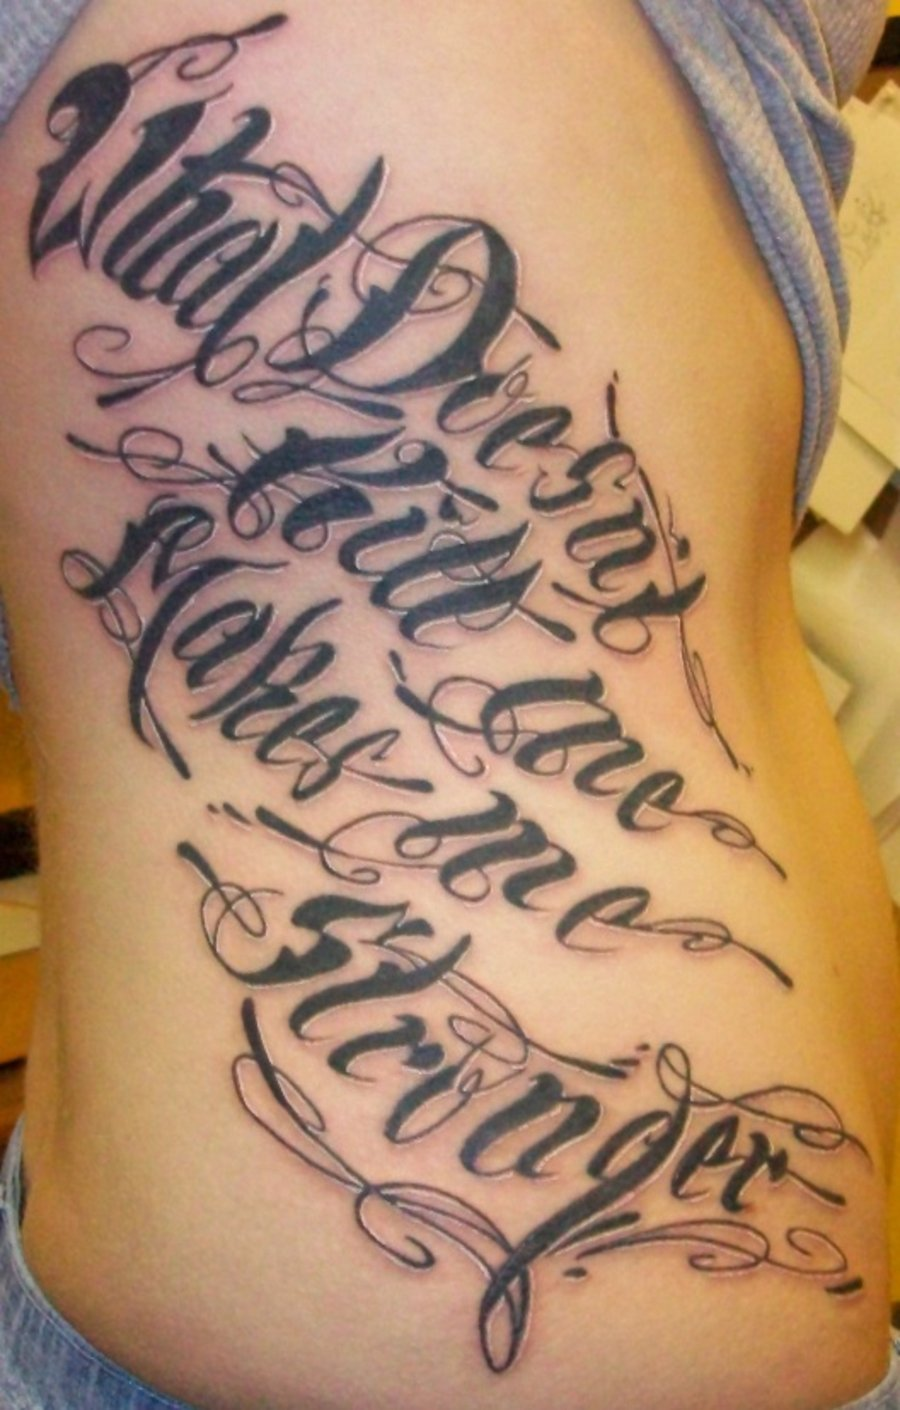 Lettering tattoos my tattoos zone lettering tattoos altavistaventures